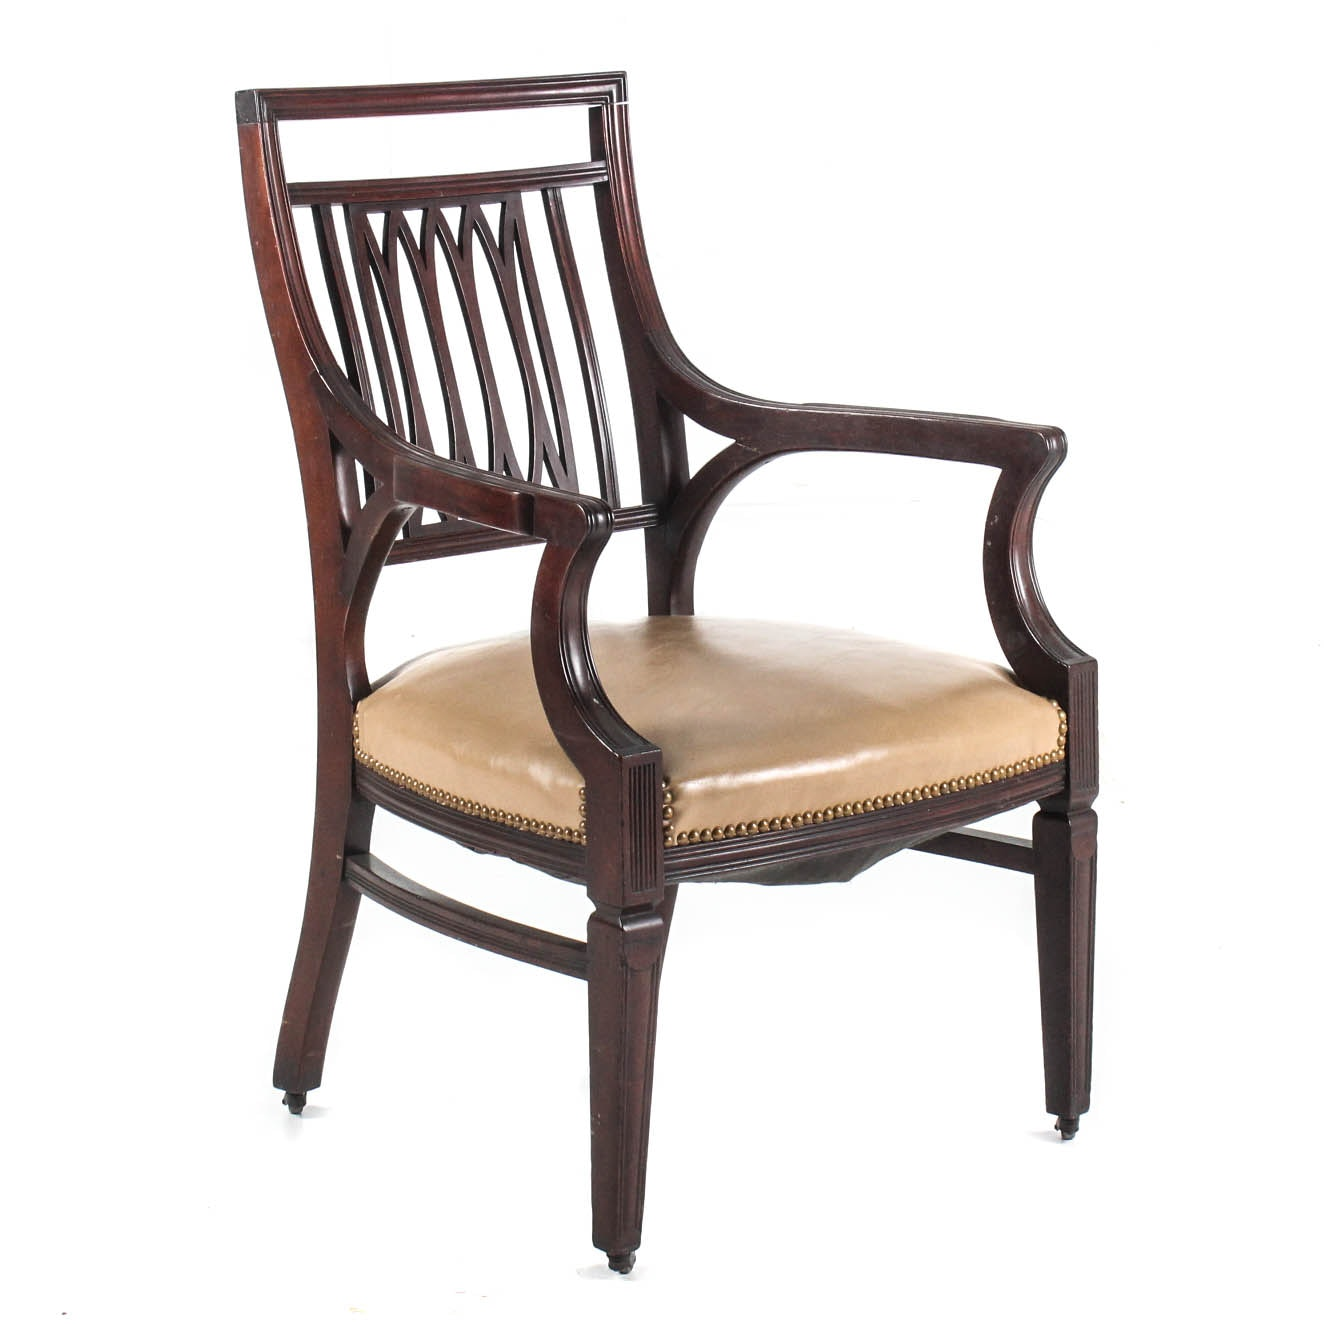 Vintage Mahogany Sheridan Style Arm Chair with Leather Seat